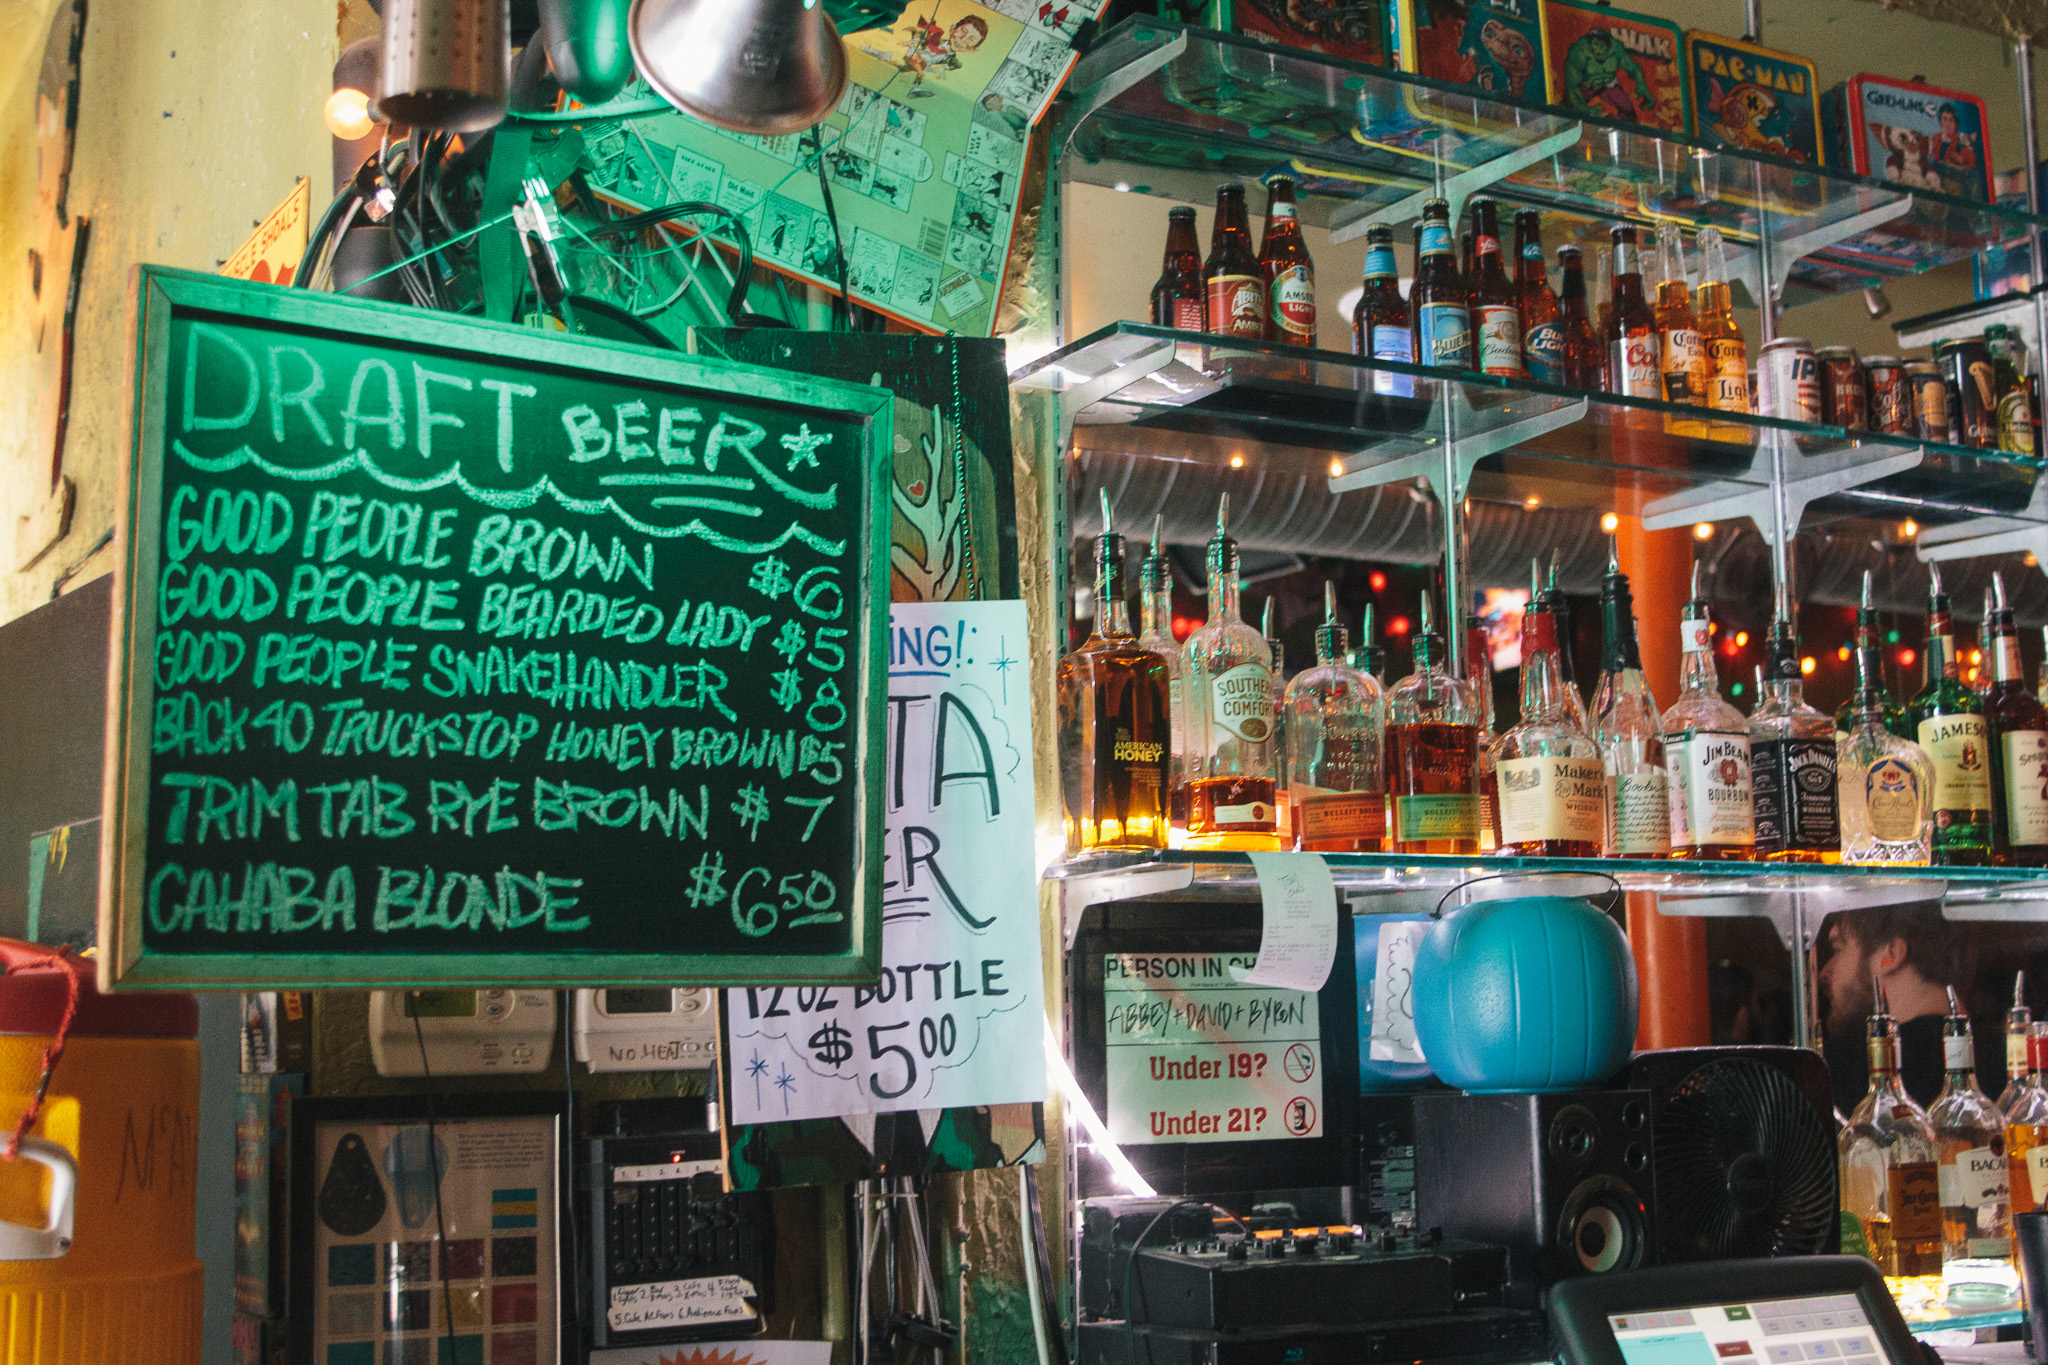 The bar at The Bottletree had one last round to go on March 28th, 2015. / DSmithScenes